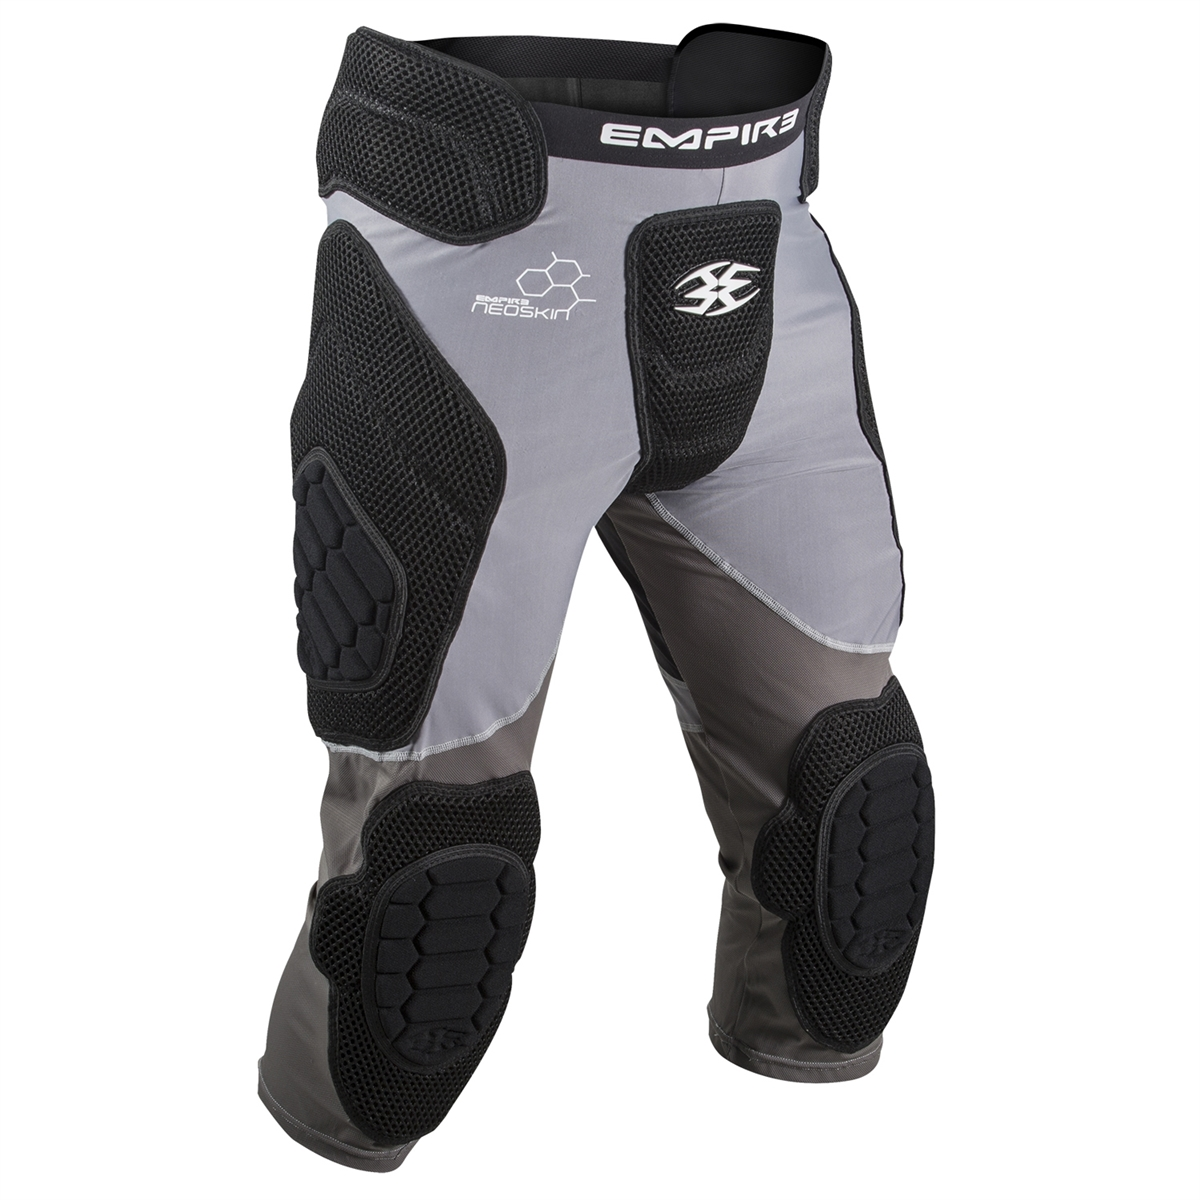 Empire Paintball NeoSkin Slide Short with Knee Pads F6 - Black/Silver - Youth